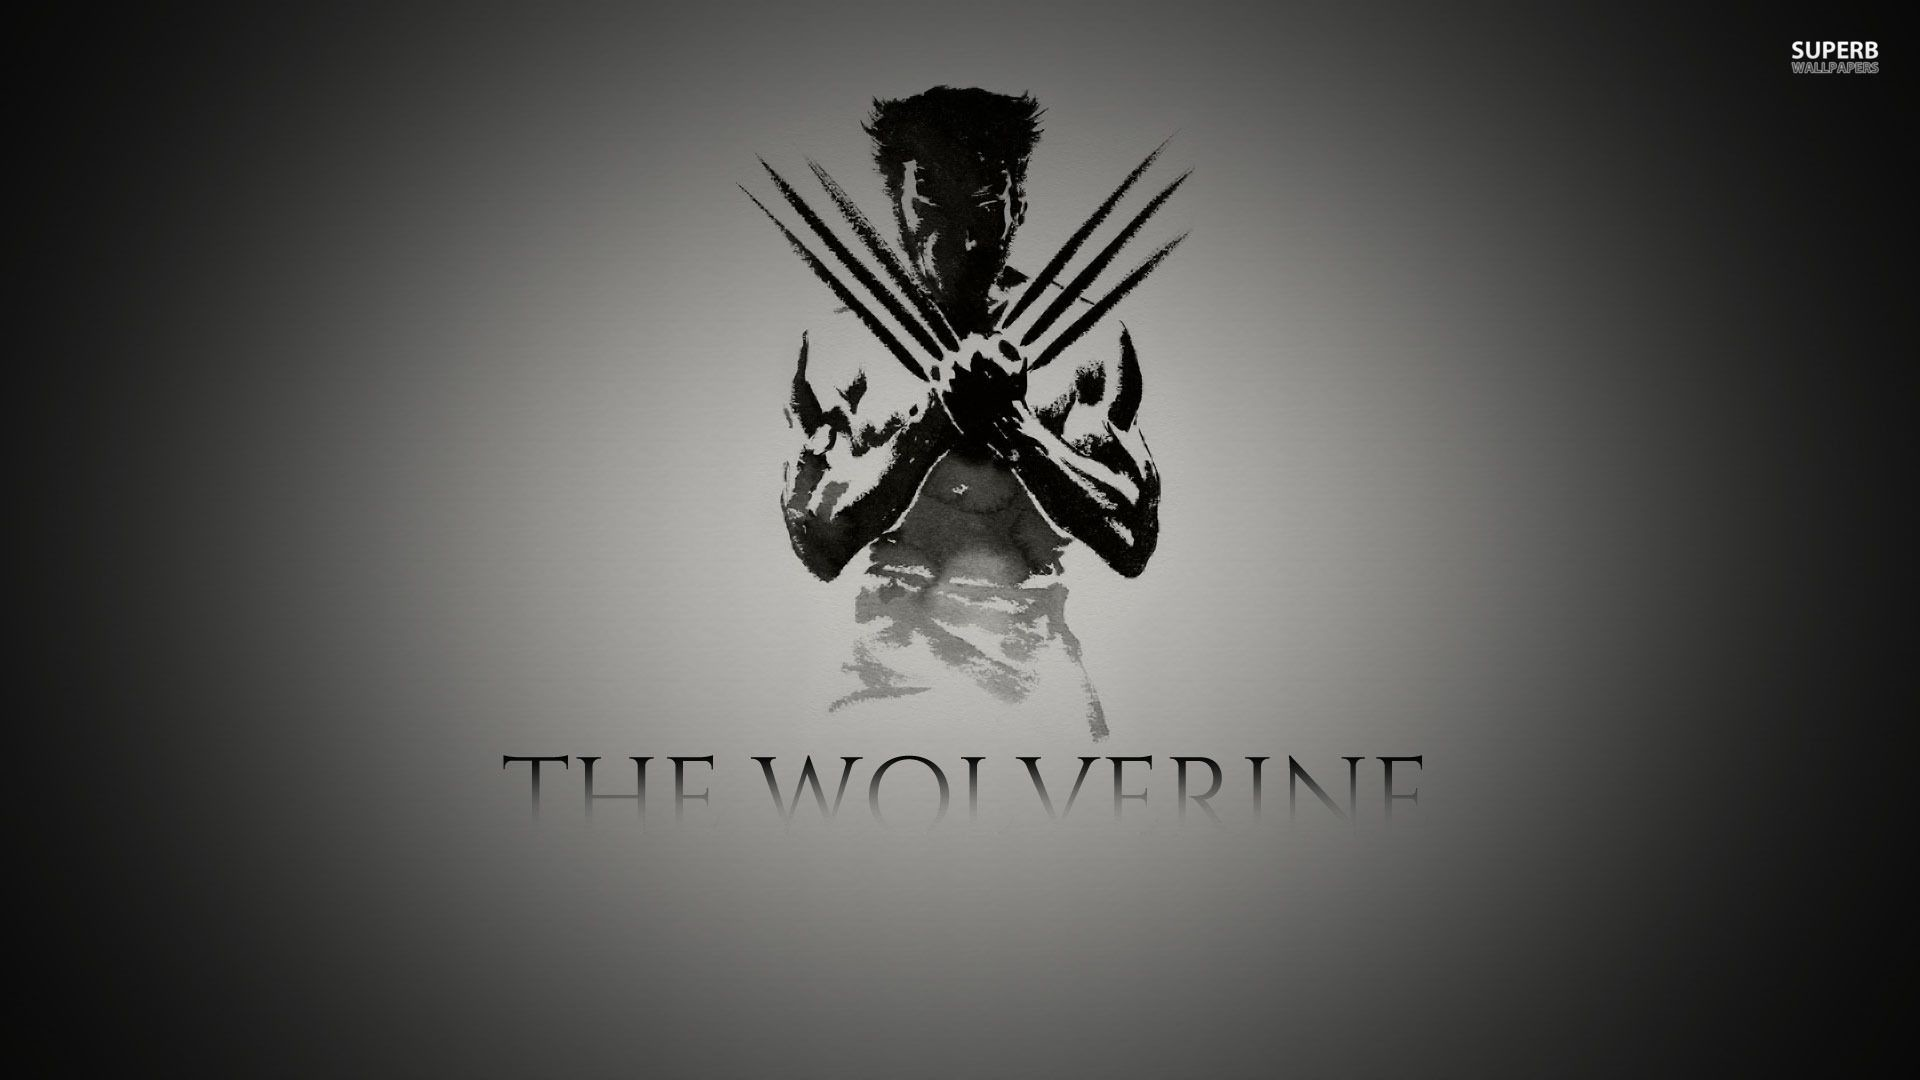 1920x1080 The Wolverine Wallpapers - Full HD wallpaper search